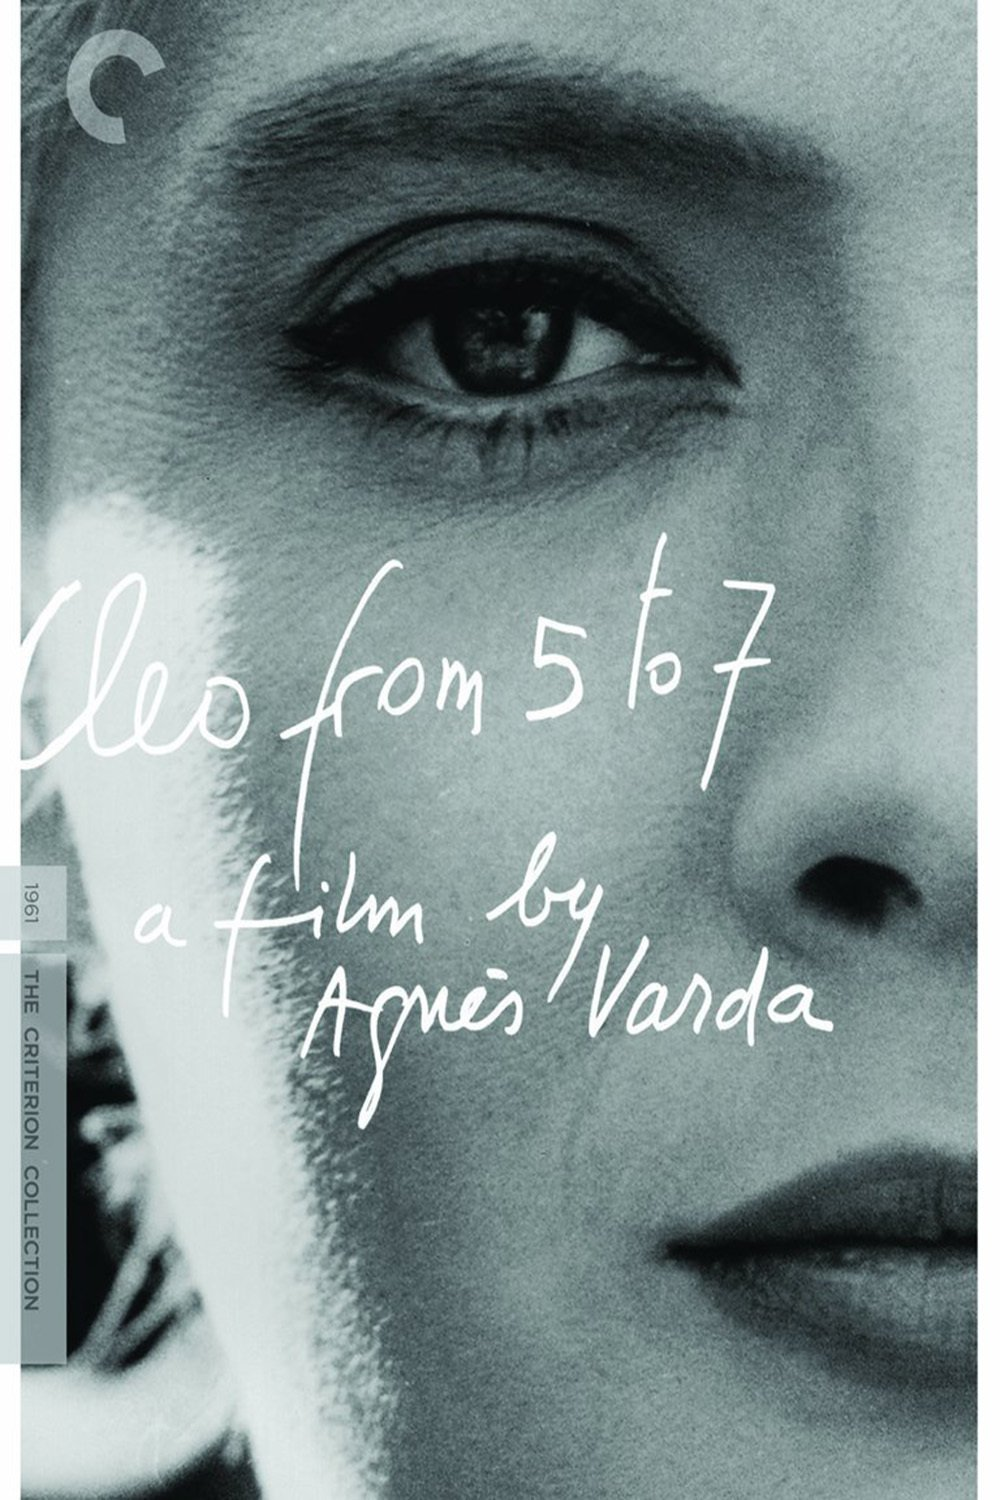 Poster for Cleo From 5 to 7